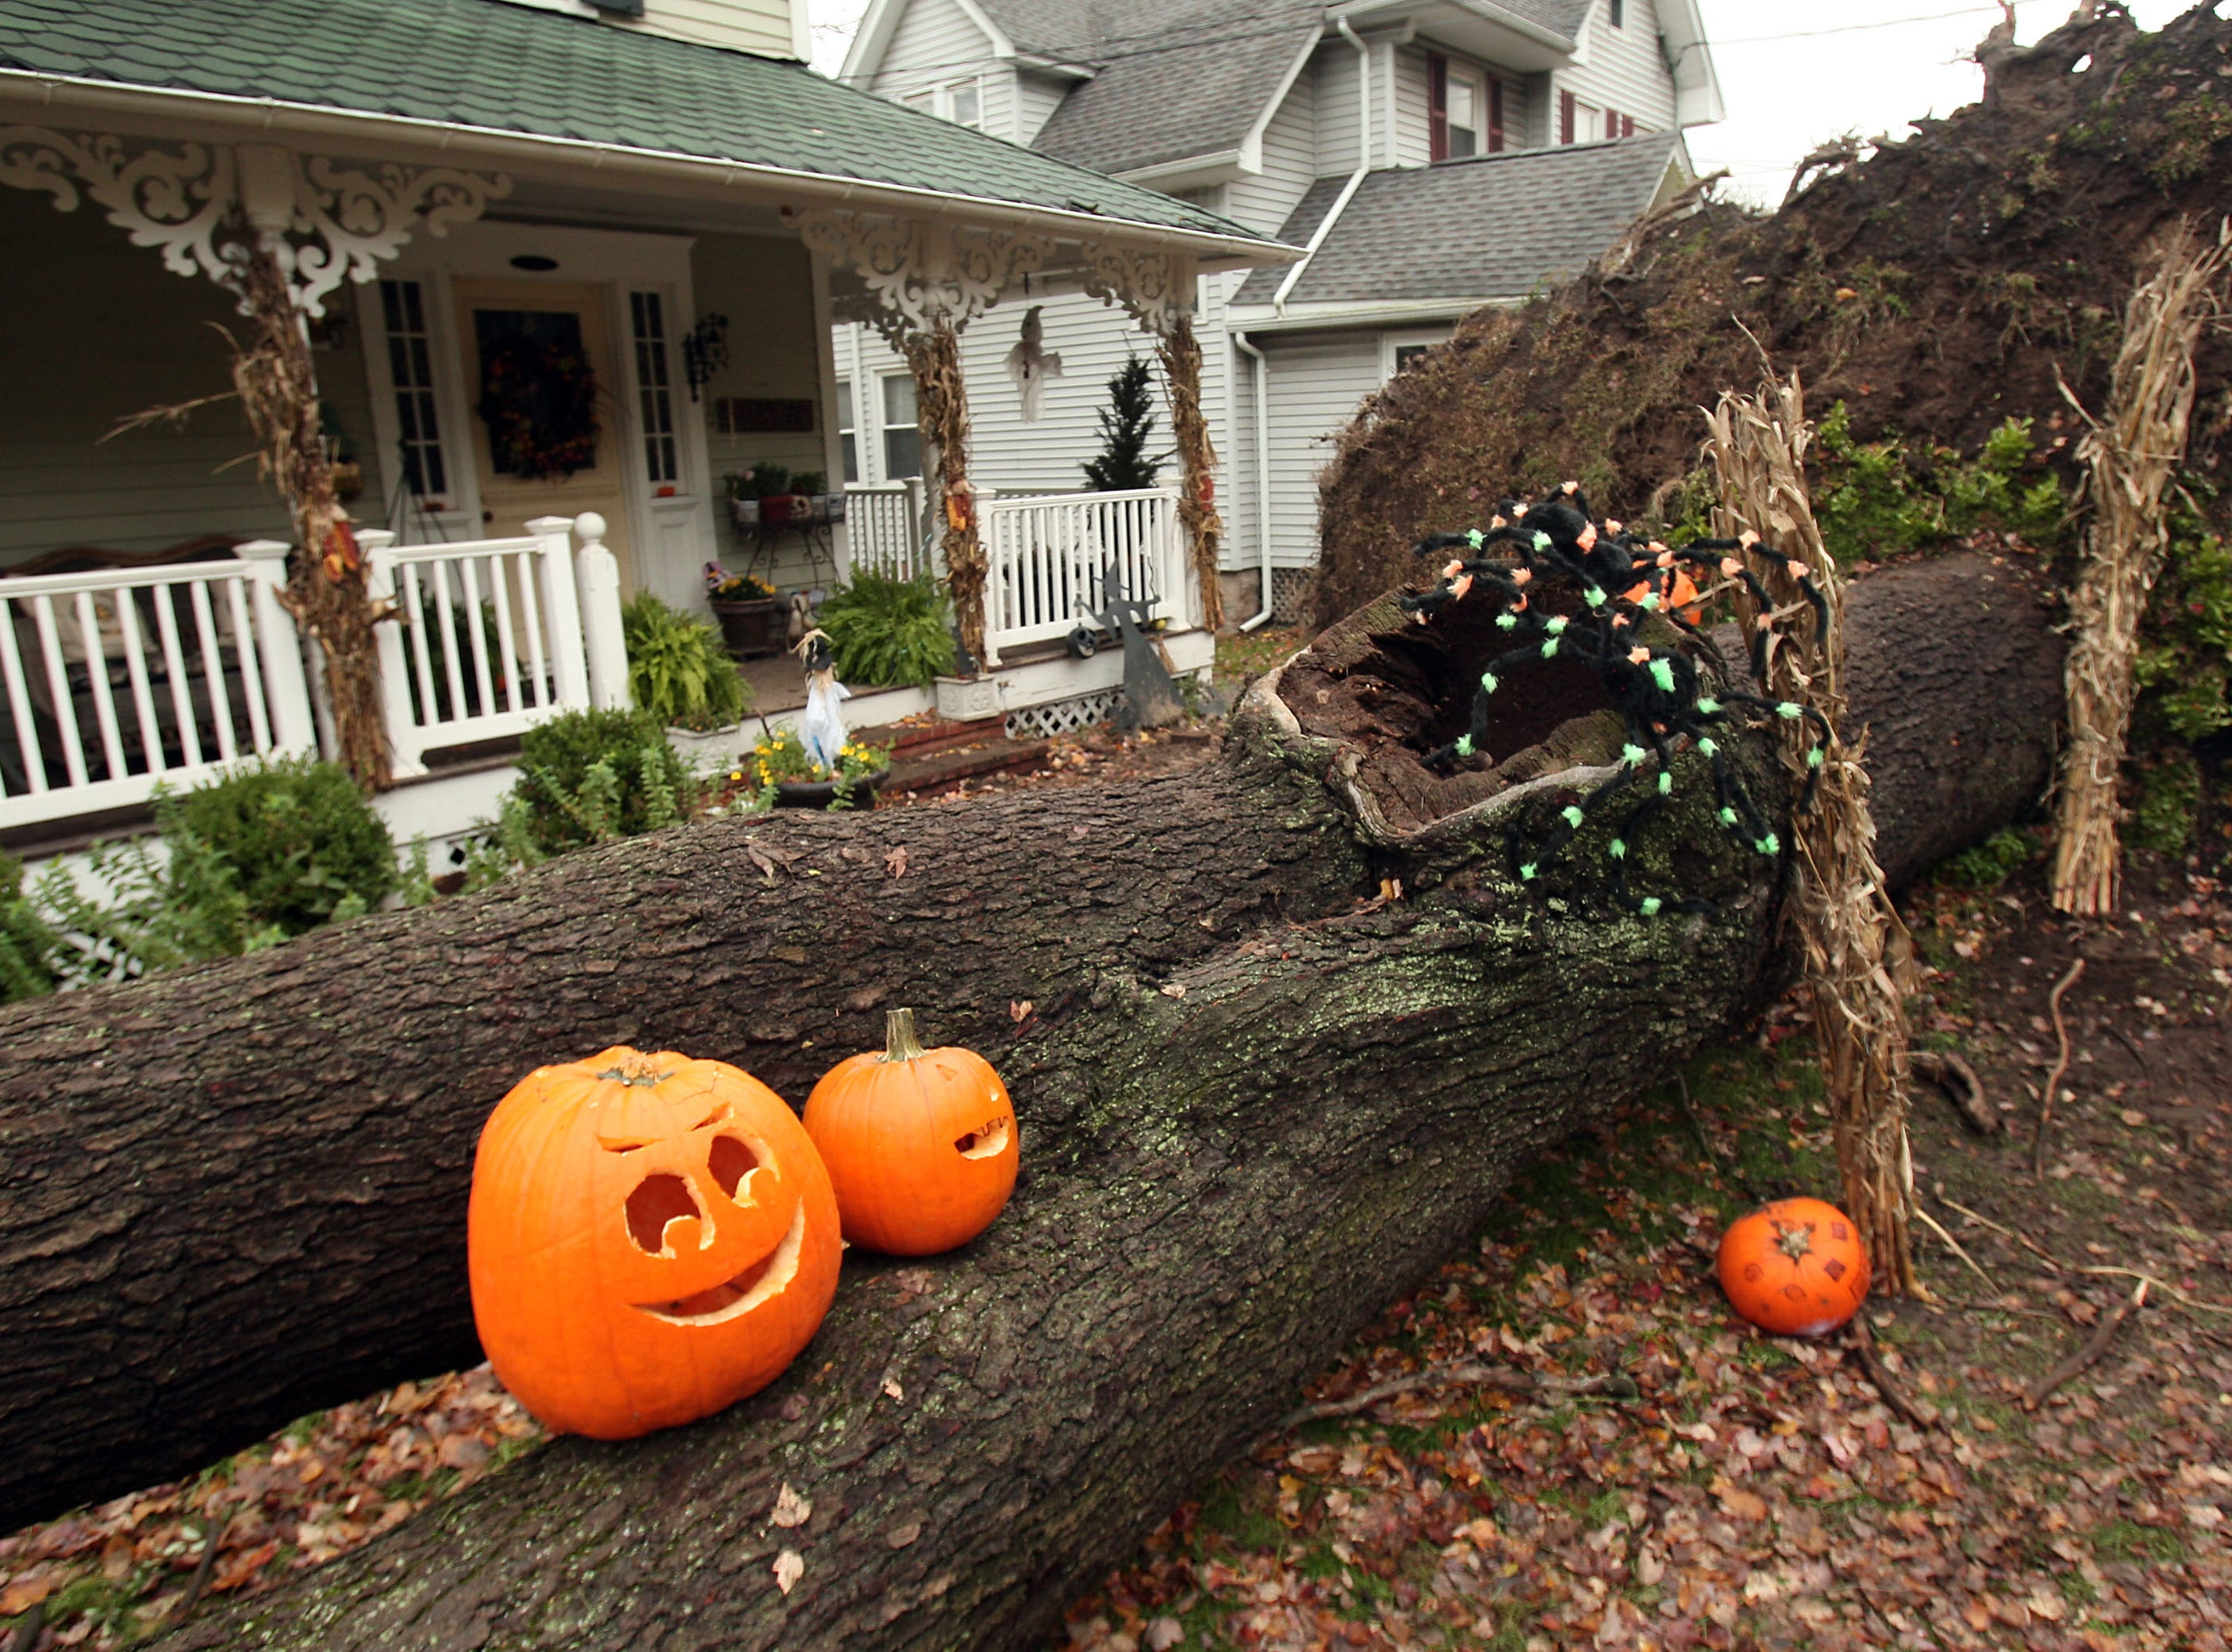 Morristown, NJ-- October 31, 2012--A family on Washington Street in Morristown, NJ hasn't lost their sense of humor in the aftermath of Hurricane Sandy. Bob Karp/Staff Photographer/DAILY RECORD